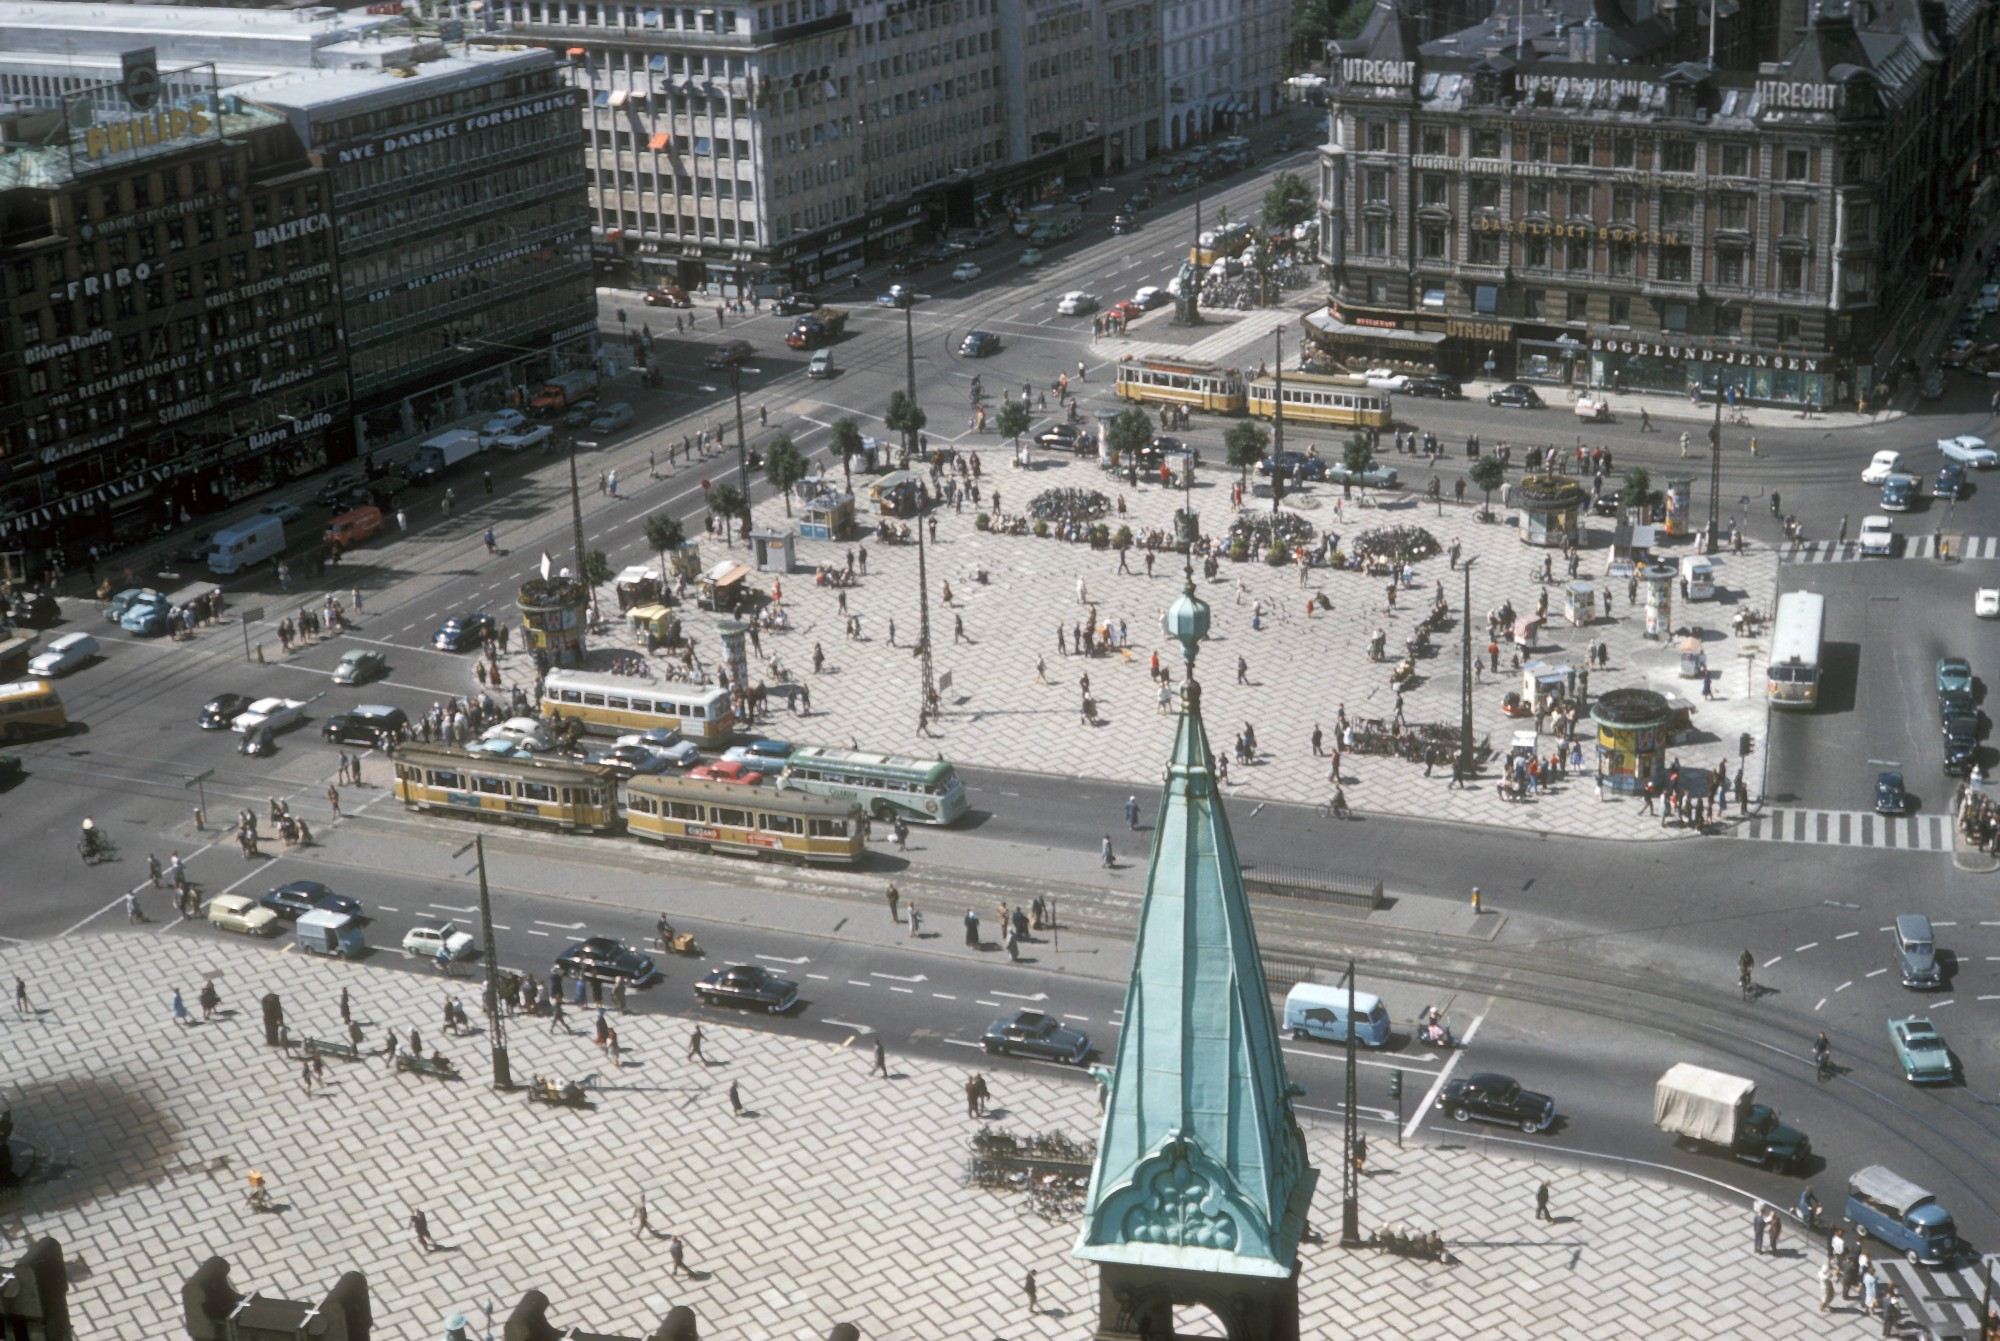 1960 Copenhagen, view of City Hall square from tower by HF